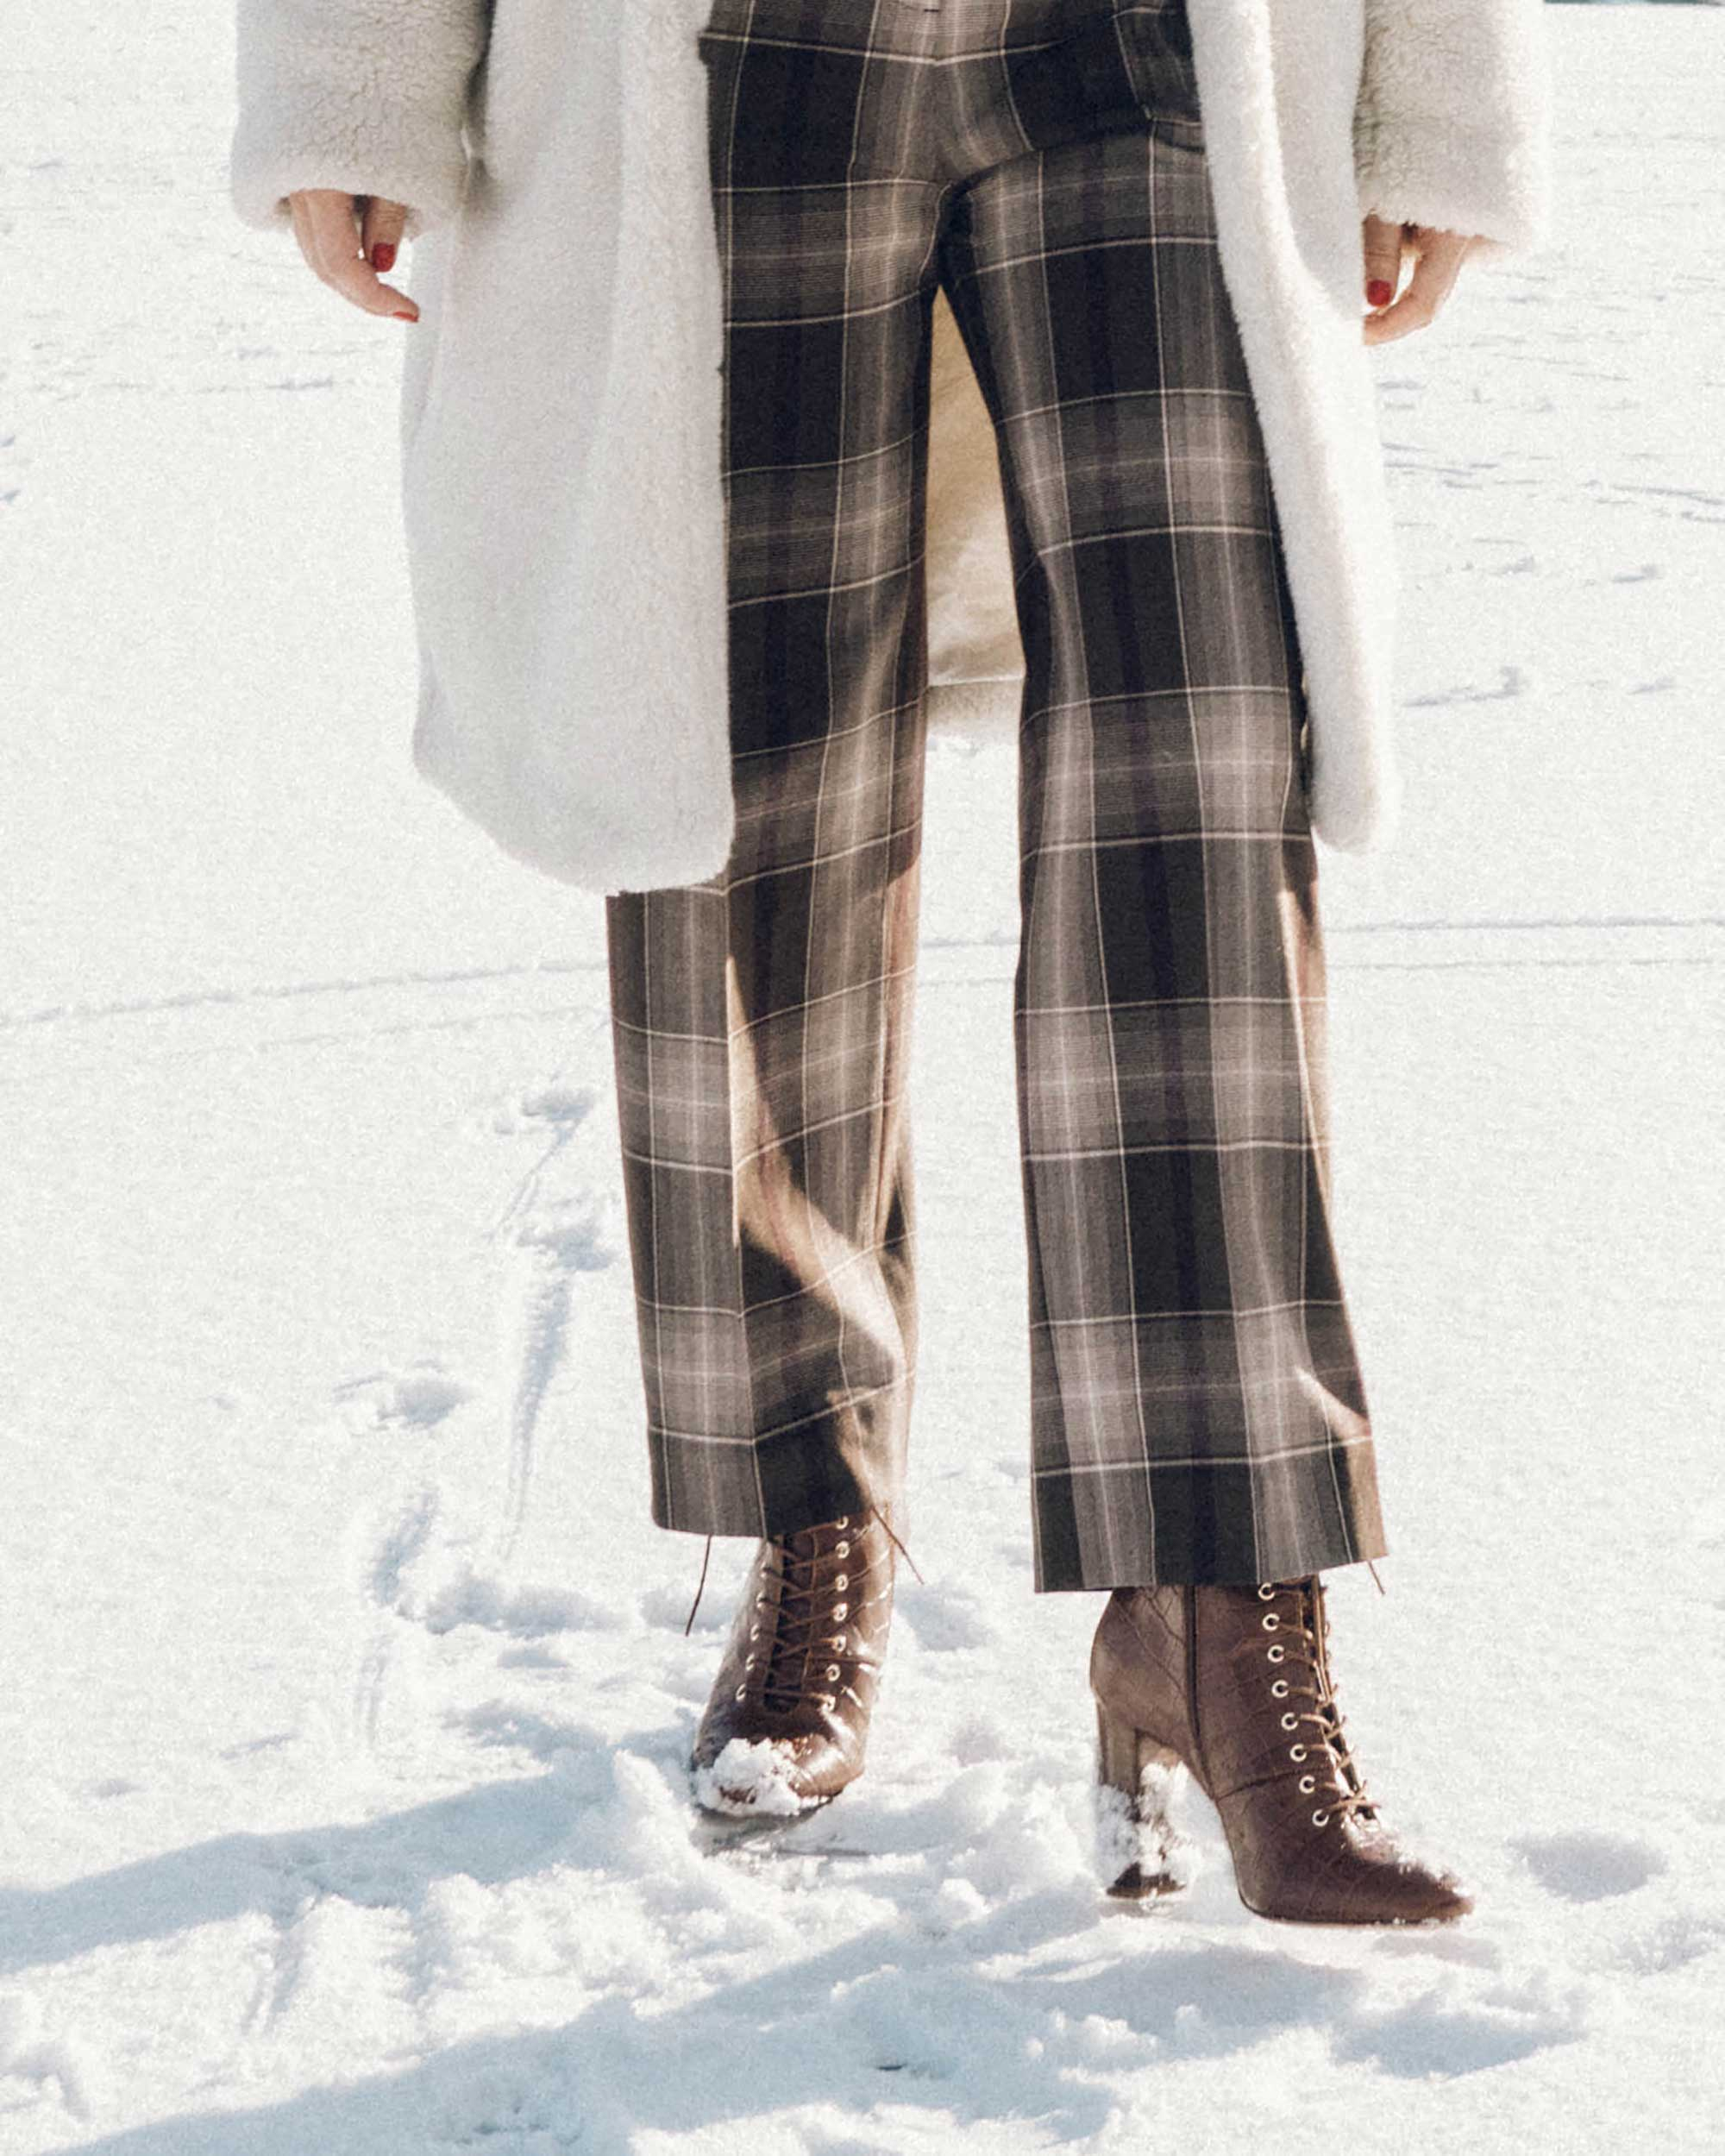 & Other Stories Tailored Brown Plaid Pants with pleats, white Faux Shearling Coat,  winter snow outfit, whistler canada2.jpg